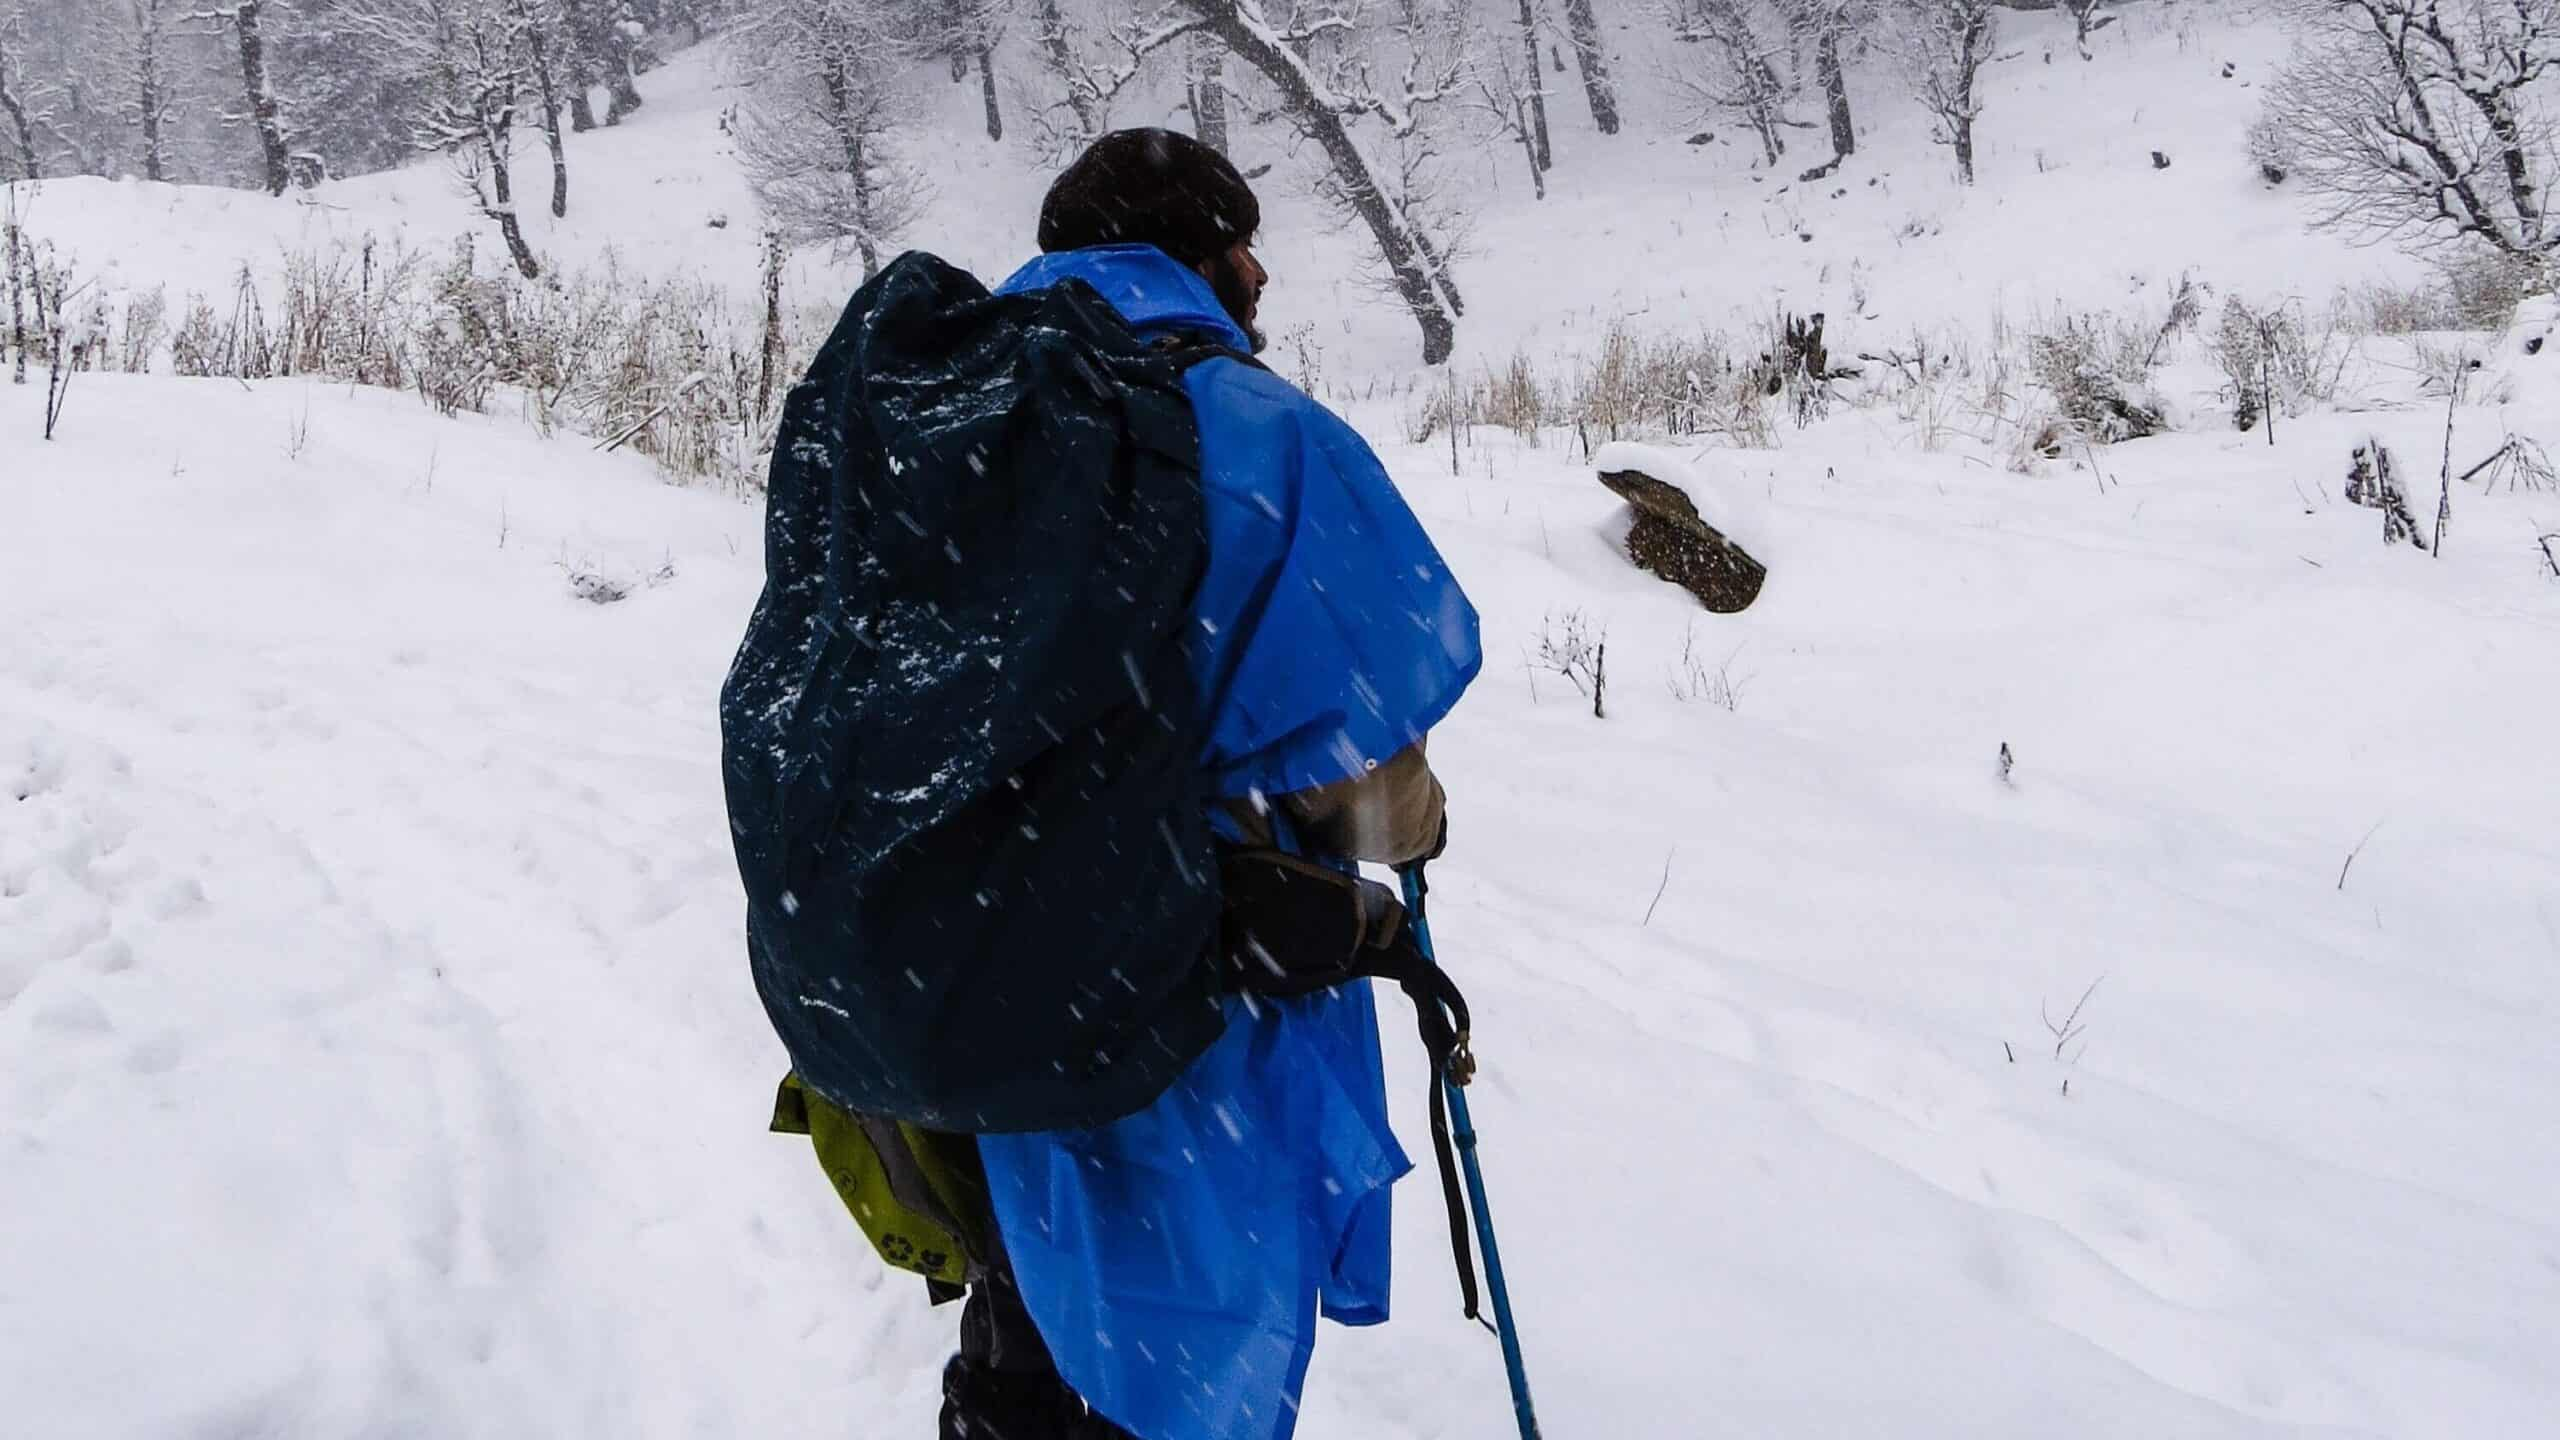 15 essentials you must have easy access to during a winter trek: Number 1 - poncho / waterproff jacket / rainwear